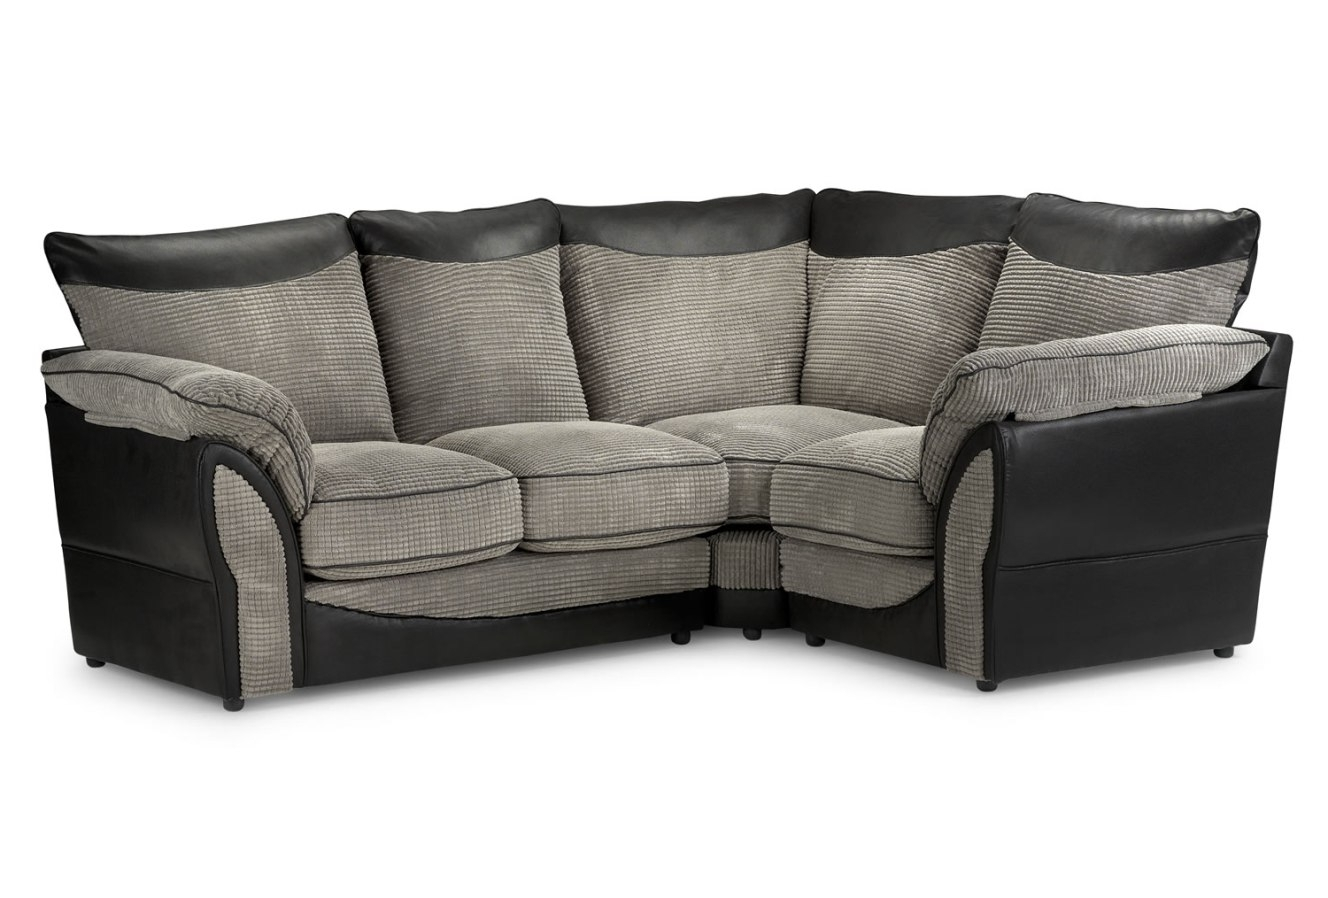 Fashionable Canterbury Leather Sofas Regarding Sofa : Wonderful Canterbury Leather Sofas Ellie Leather Sofa Range (View 12 of 20)